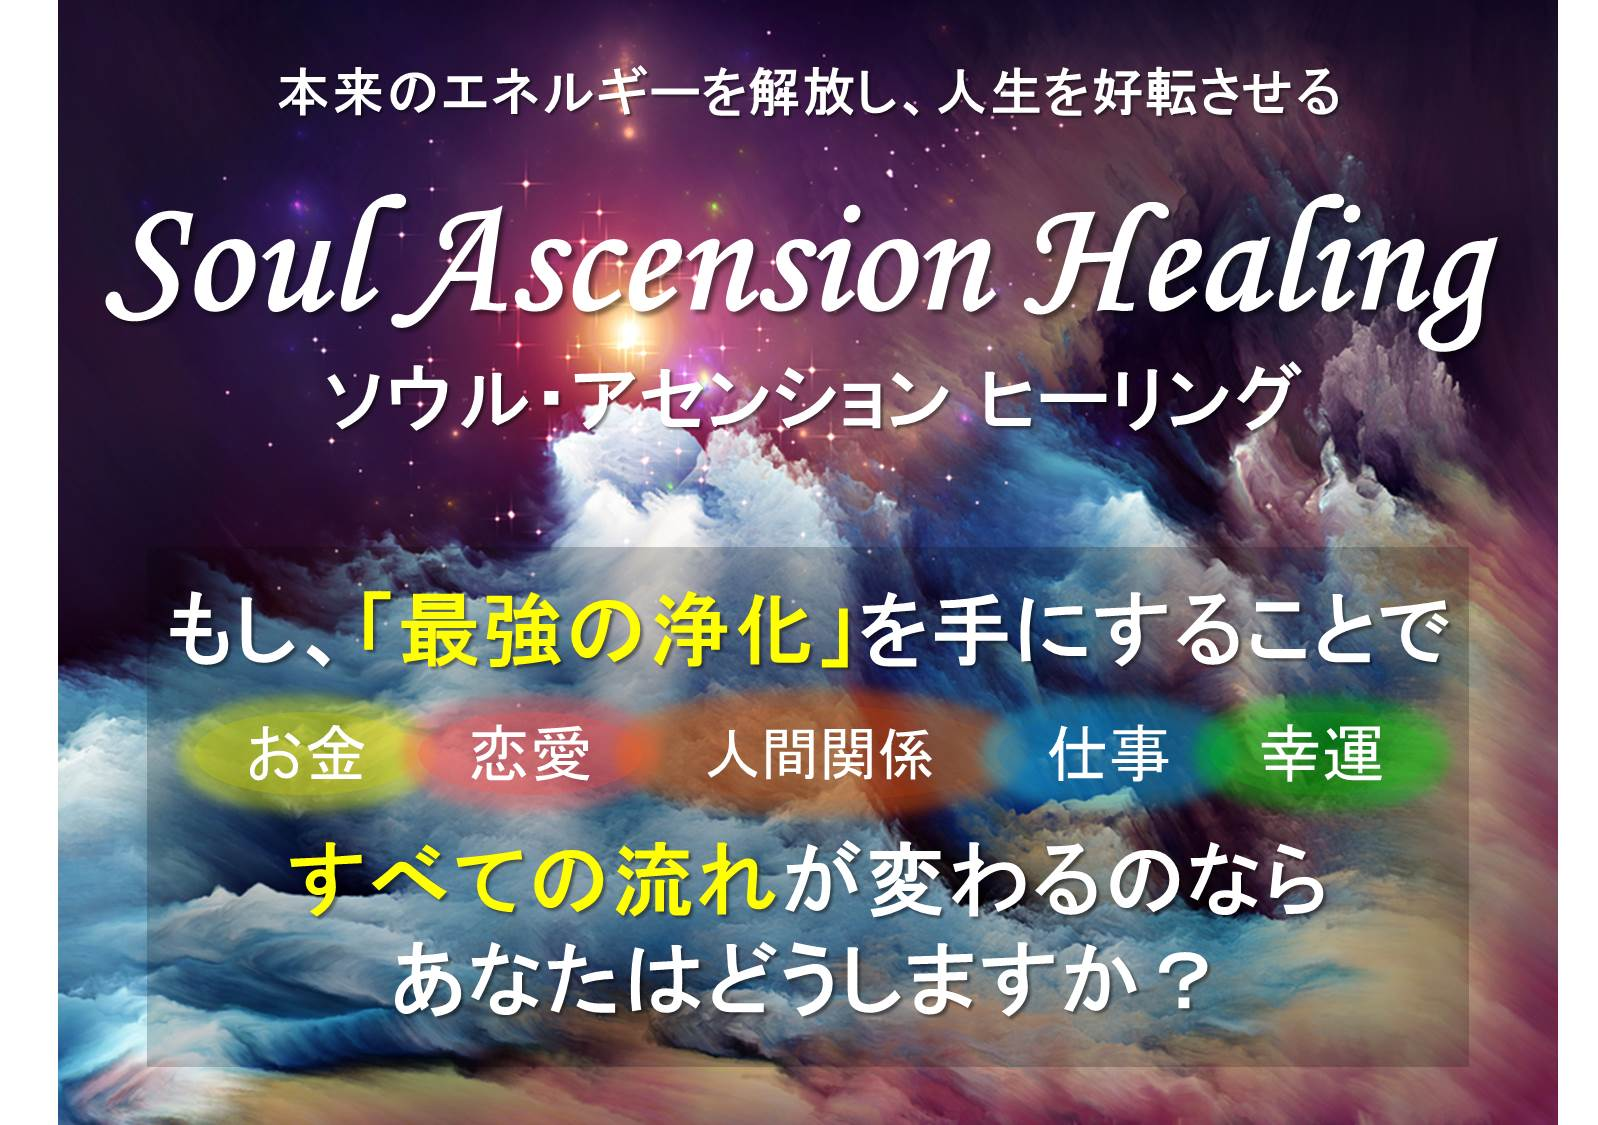 topbannar-soul-ascension-healing